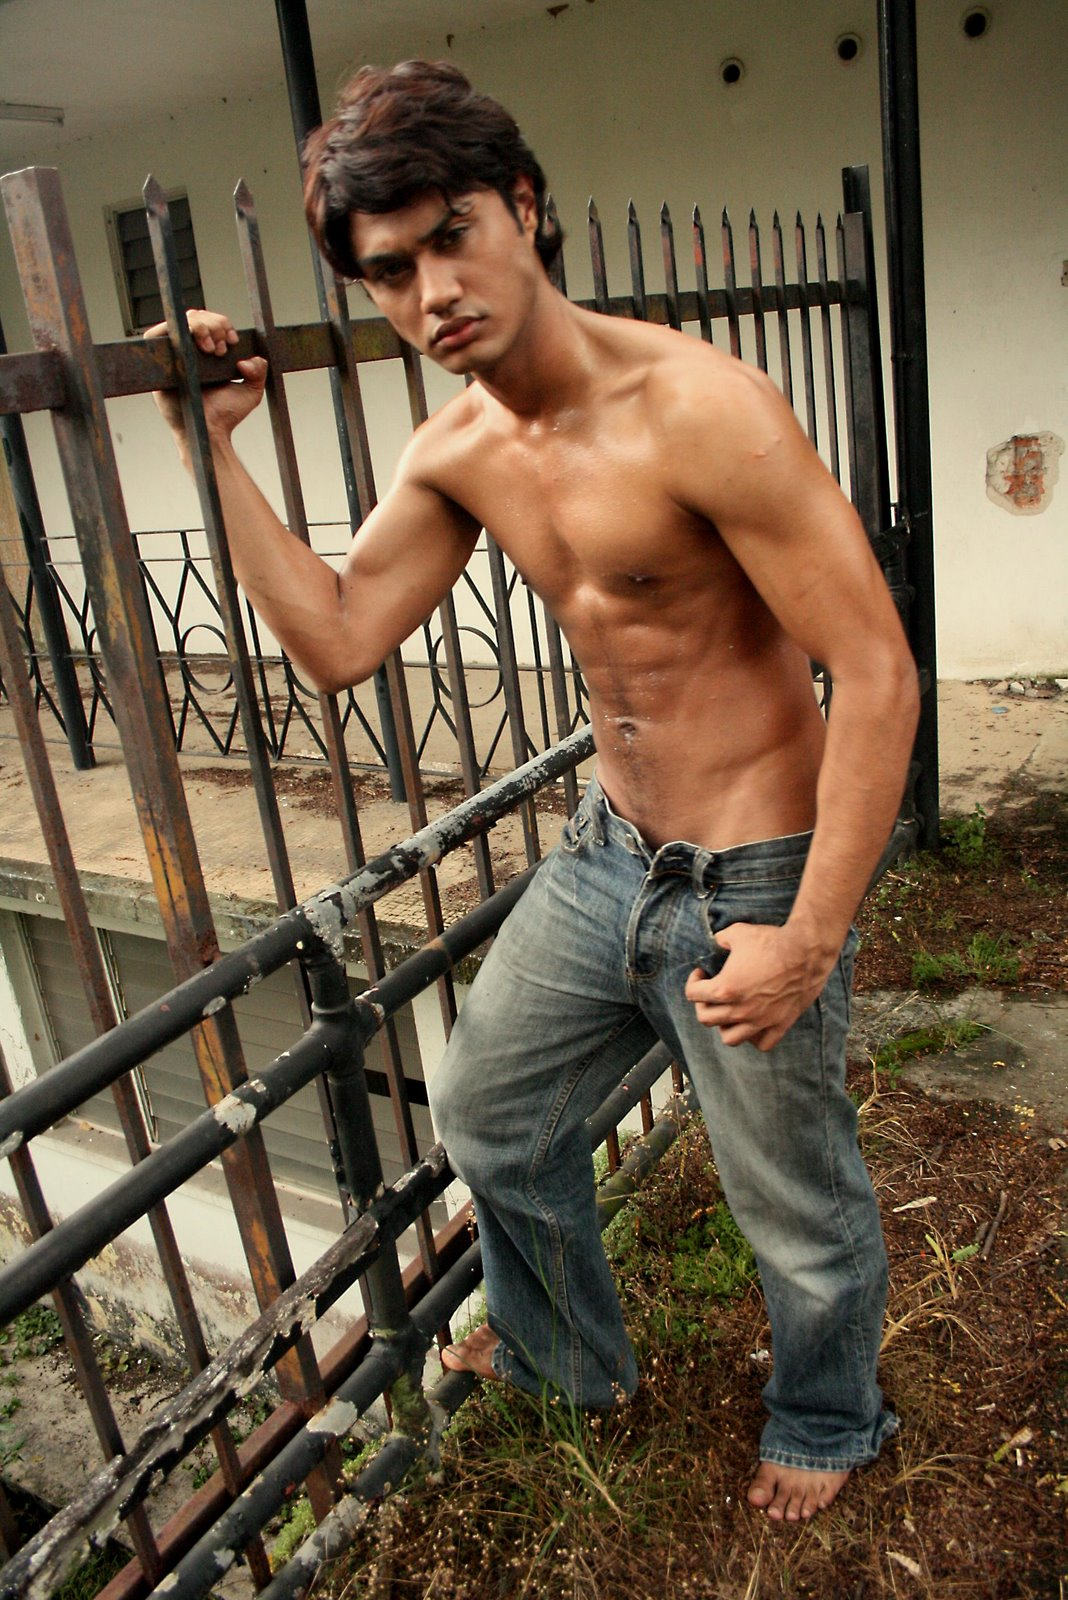 Malay nude male model